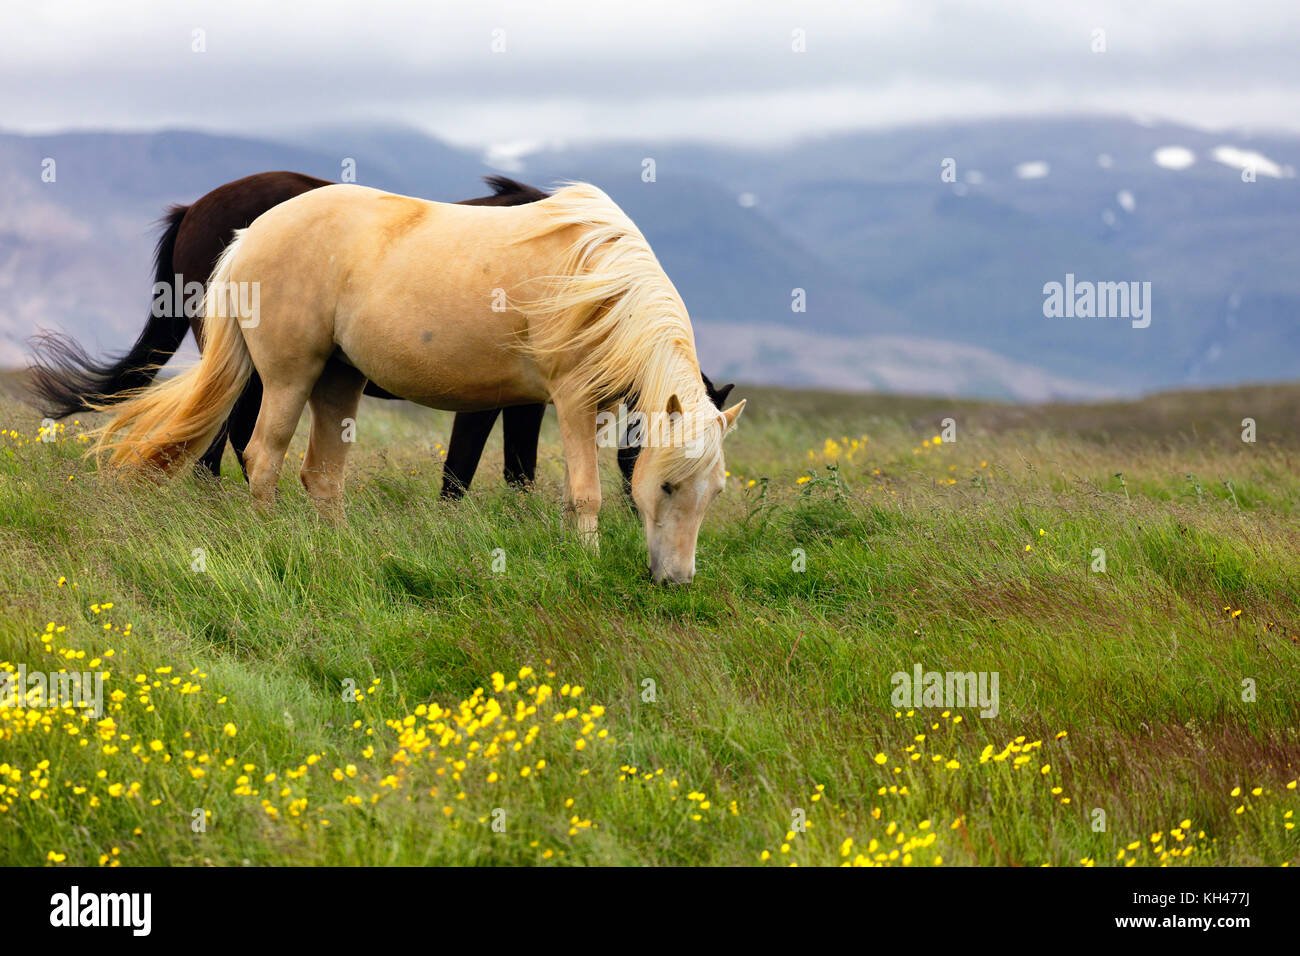 Horses Grazing on a Meadow, Iceland Stock Photo